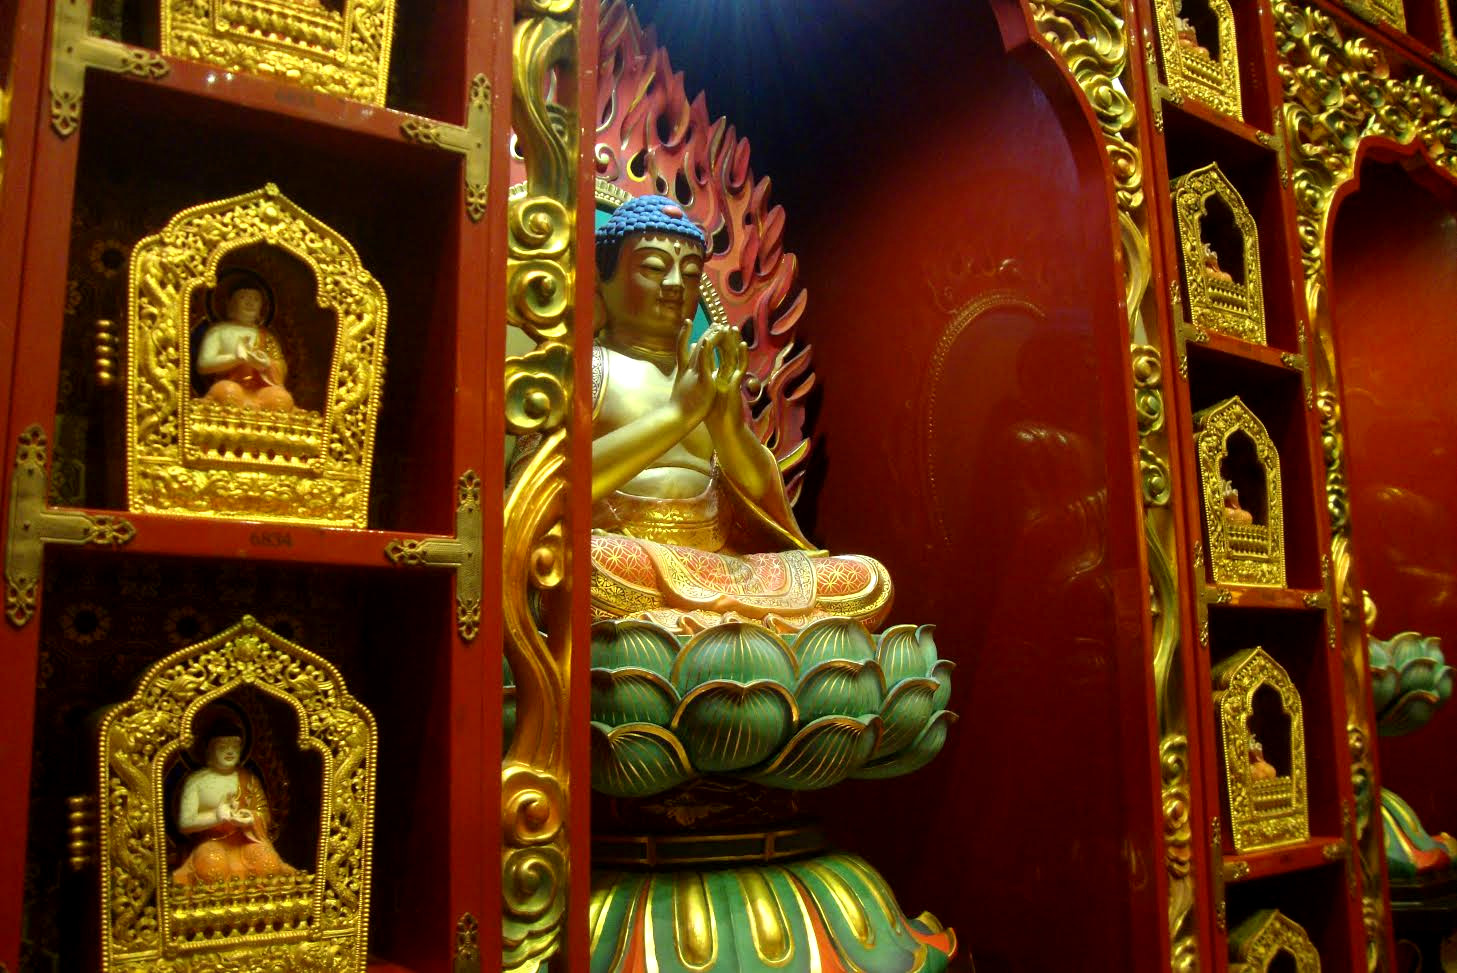 Chinatown tooth relic temple - Singapore